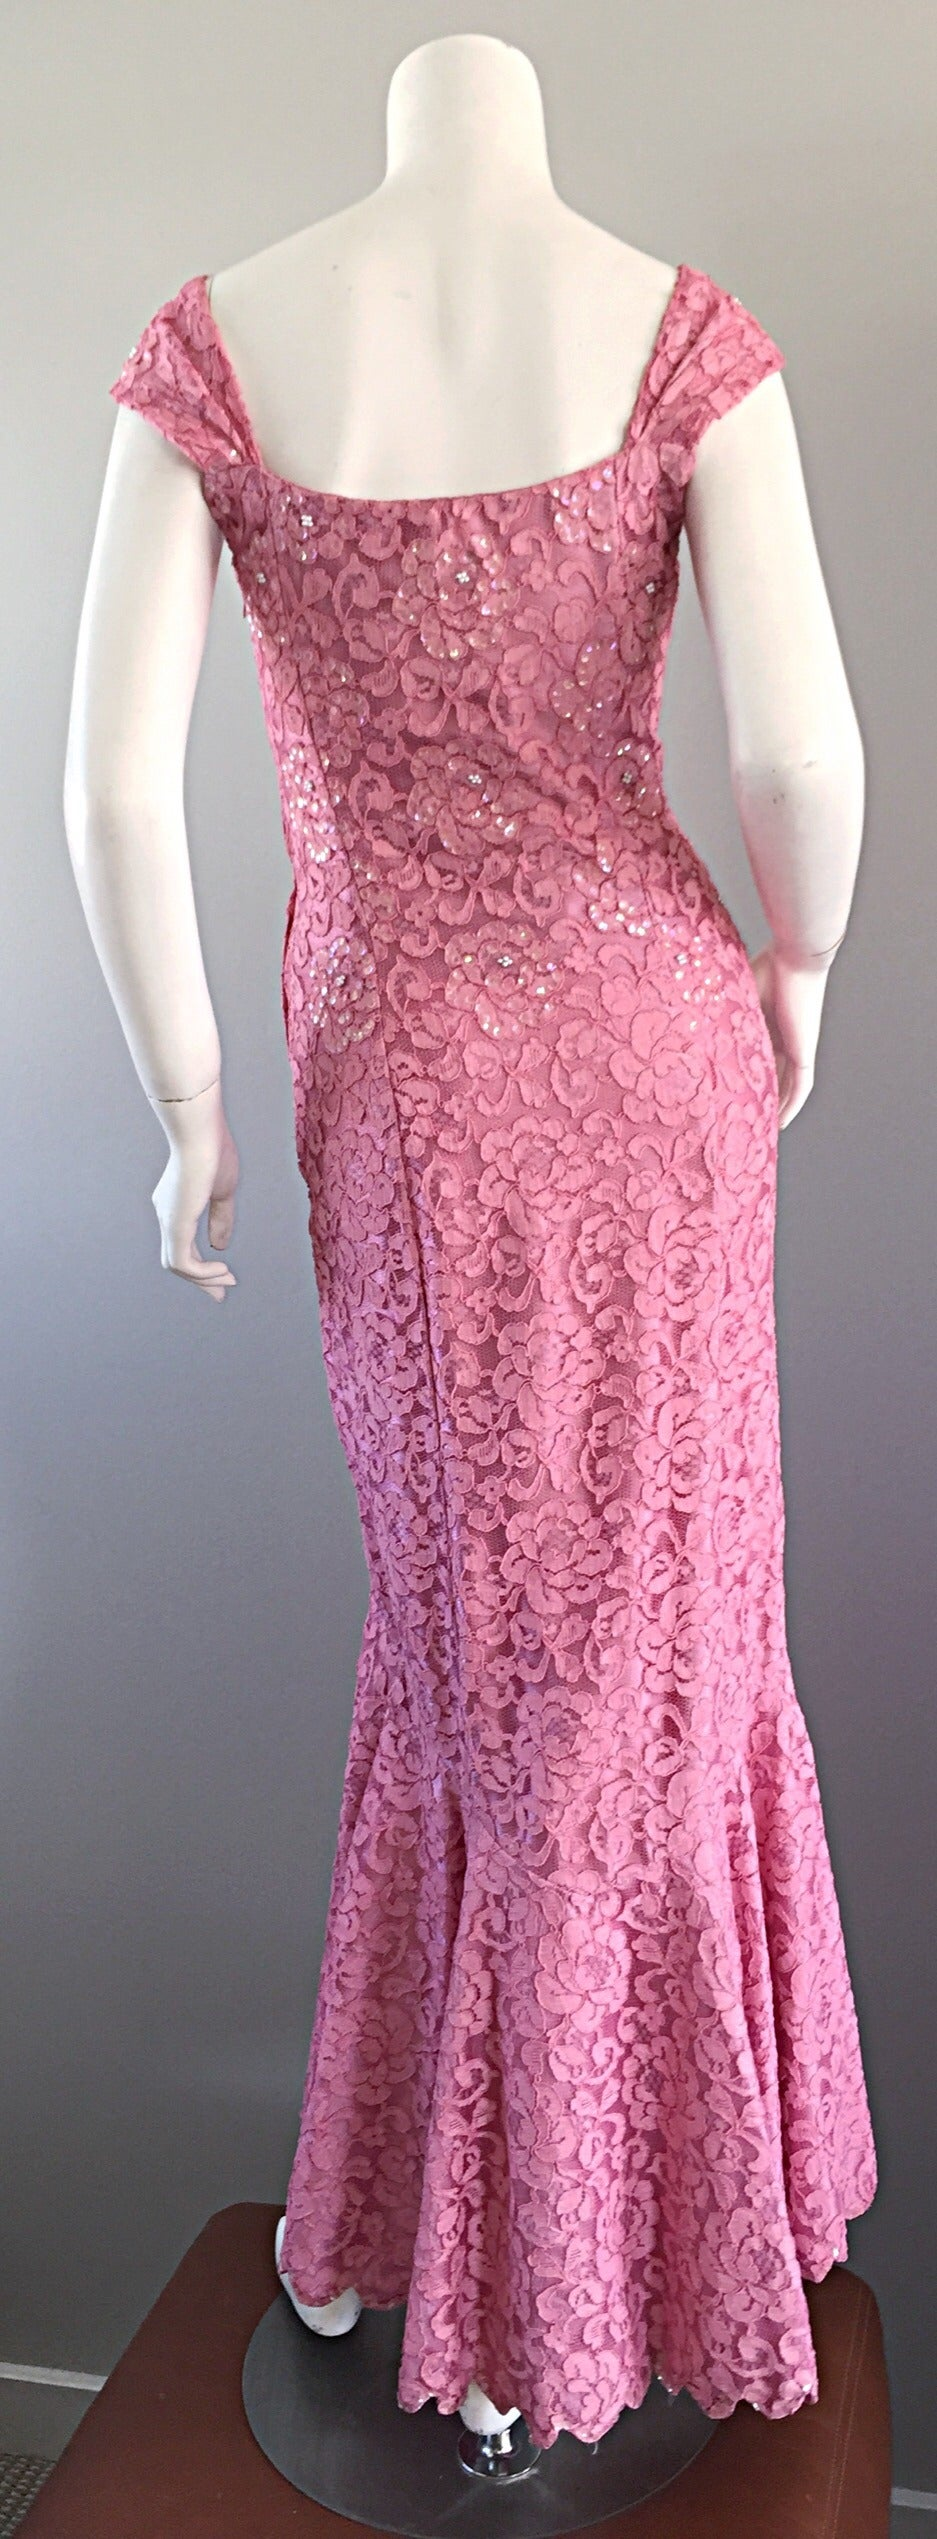 Gorgeous 1950s 50s Couture Pink Vintage Mermaid Dress w/ Chantilly Lace + Sequin 7